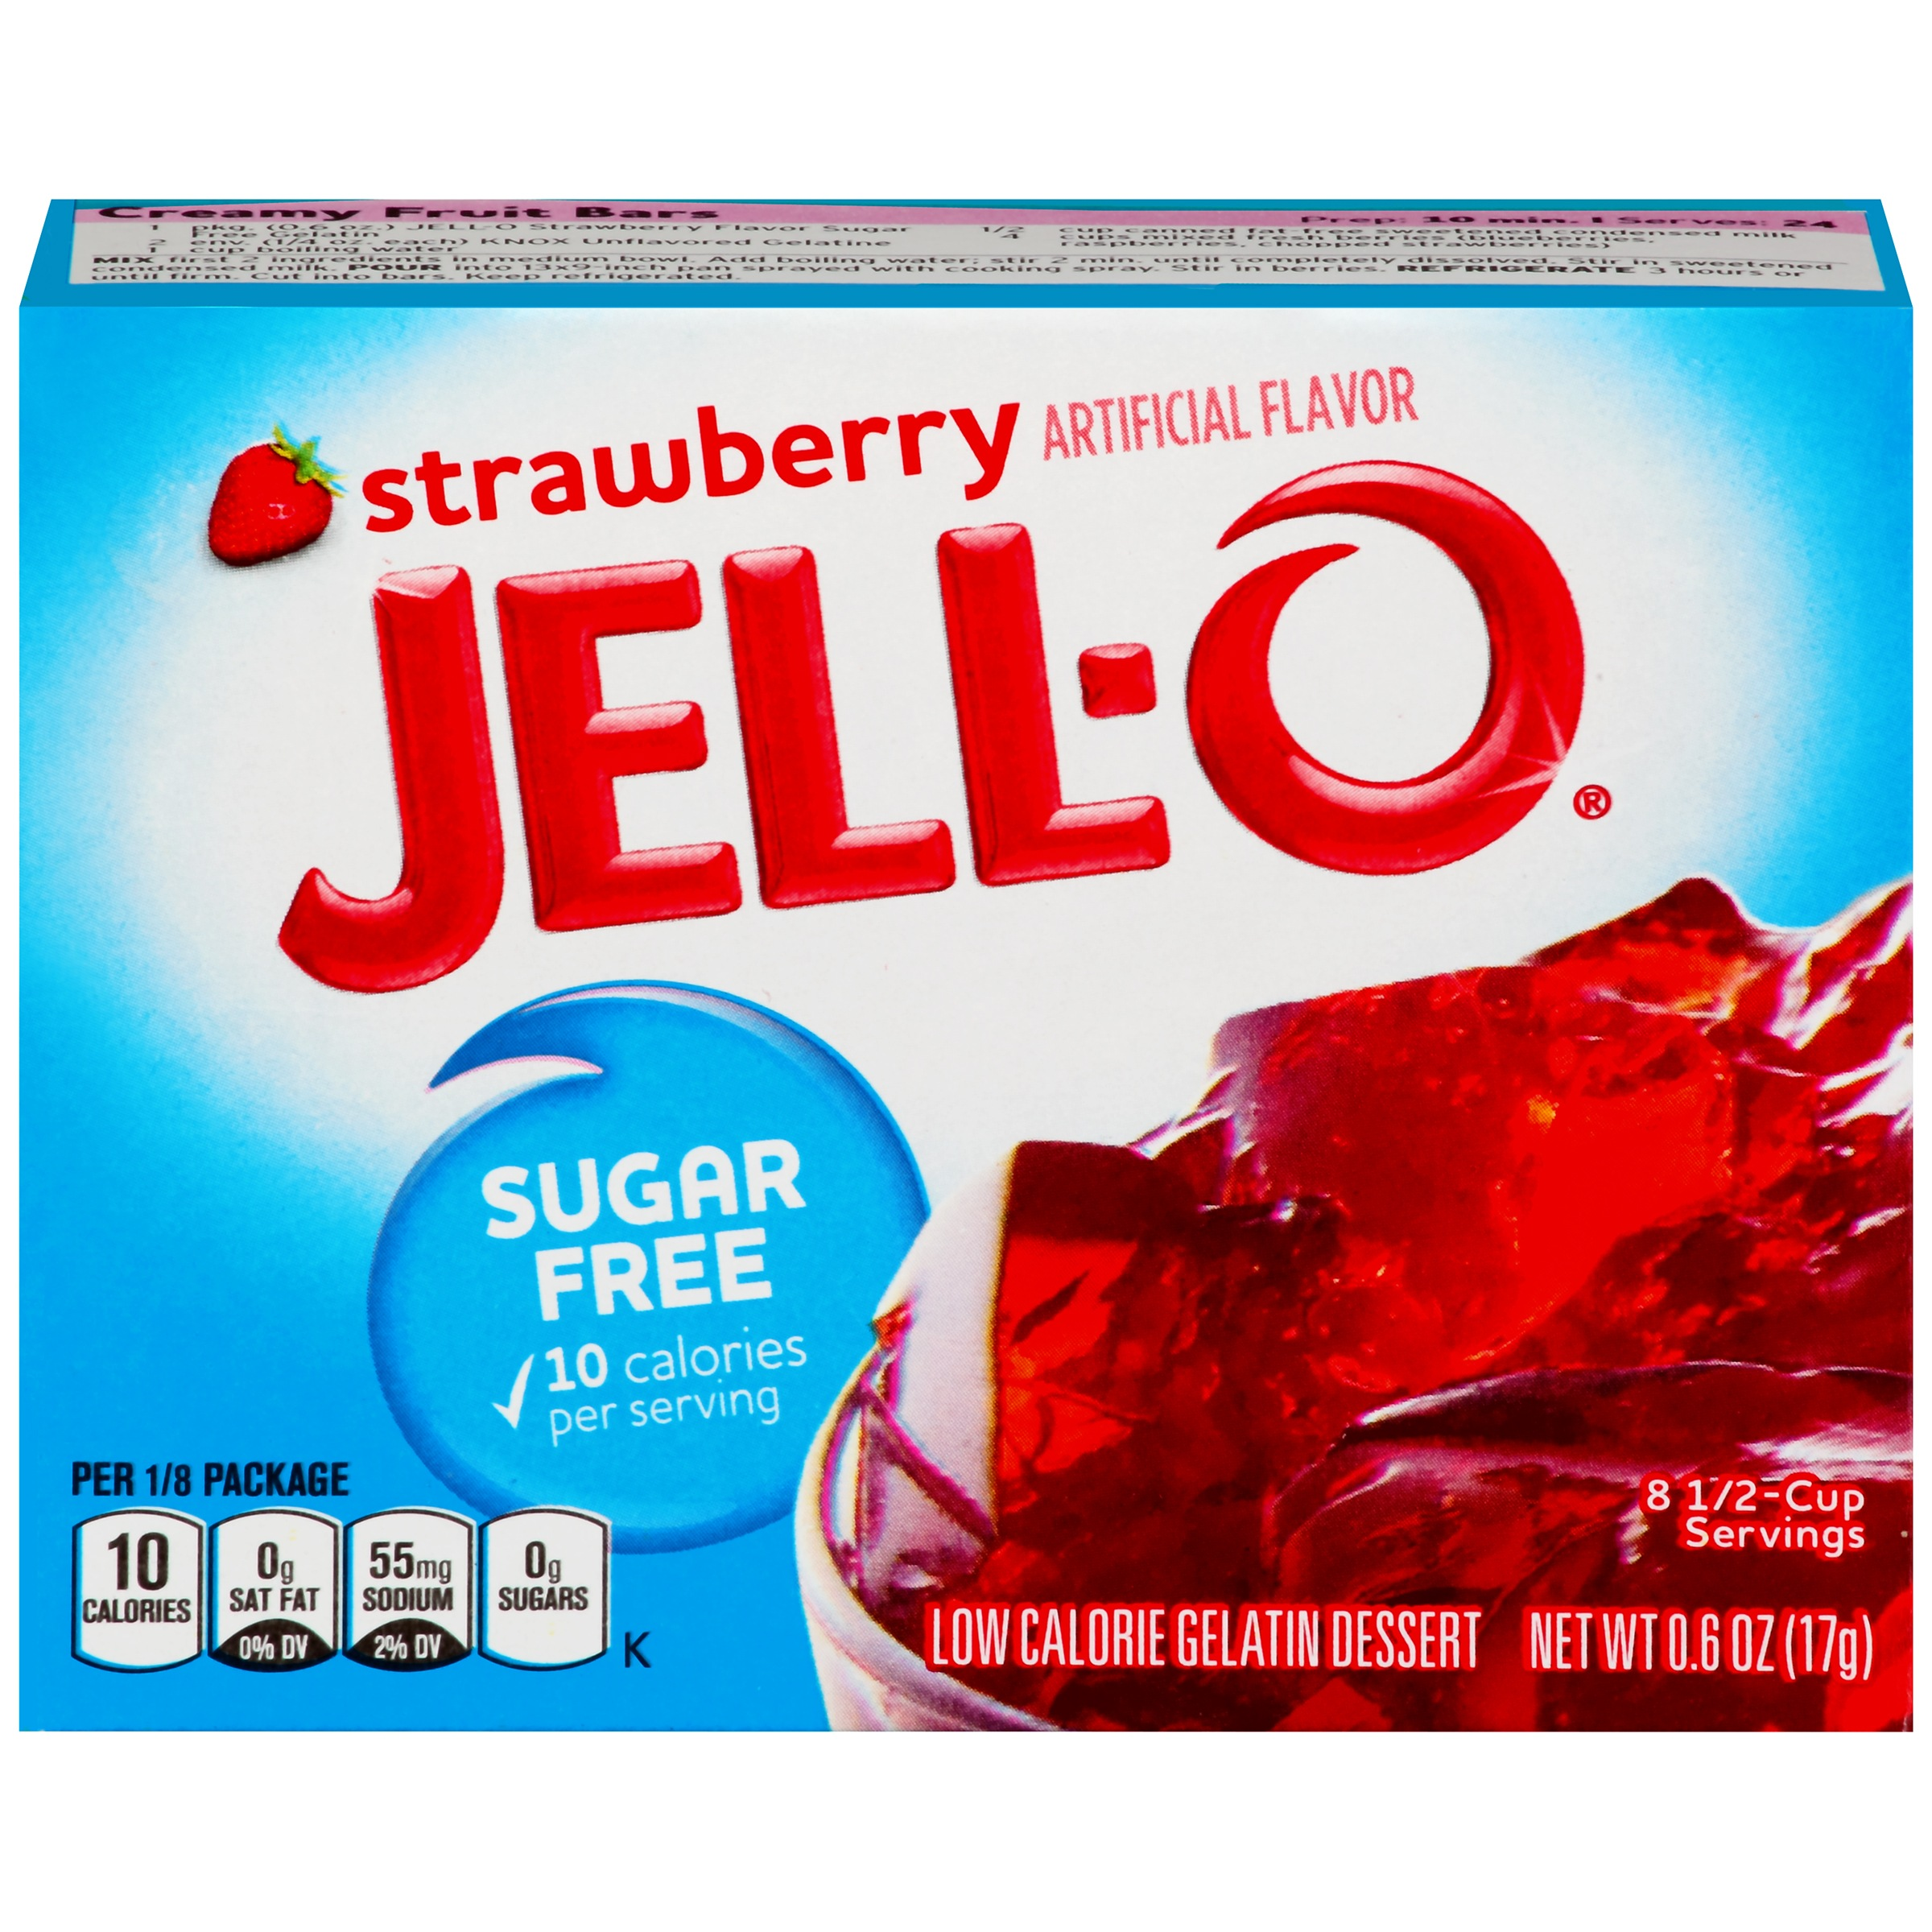 Jell-O Sugar Free Strawberry Low Calorie Gelatin Dessert Mix 0.6 oz. Box